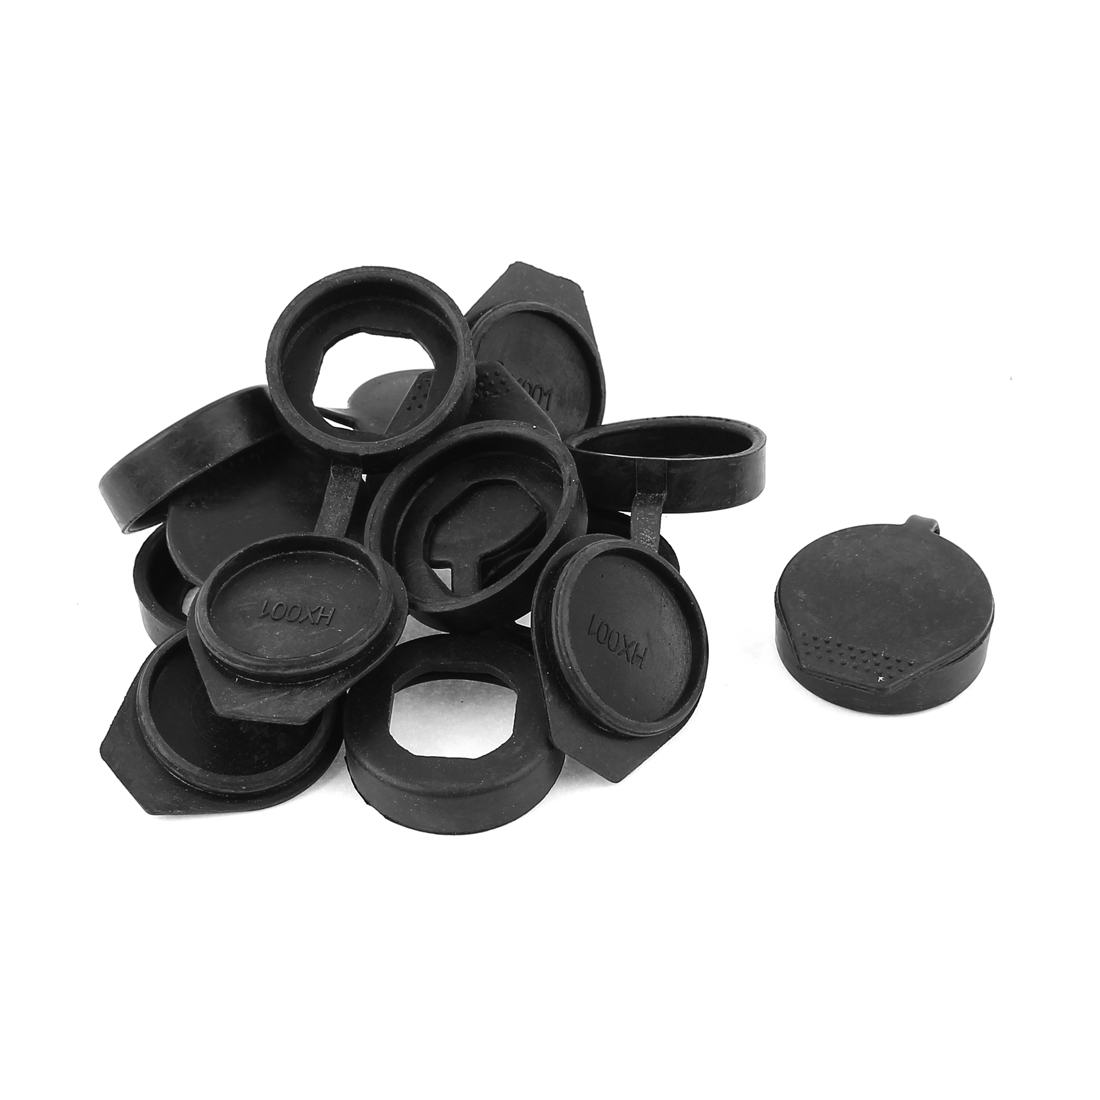 8 Pcs Black Round Soft Silicone Insulated Flat Protecting Socket Cover